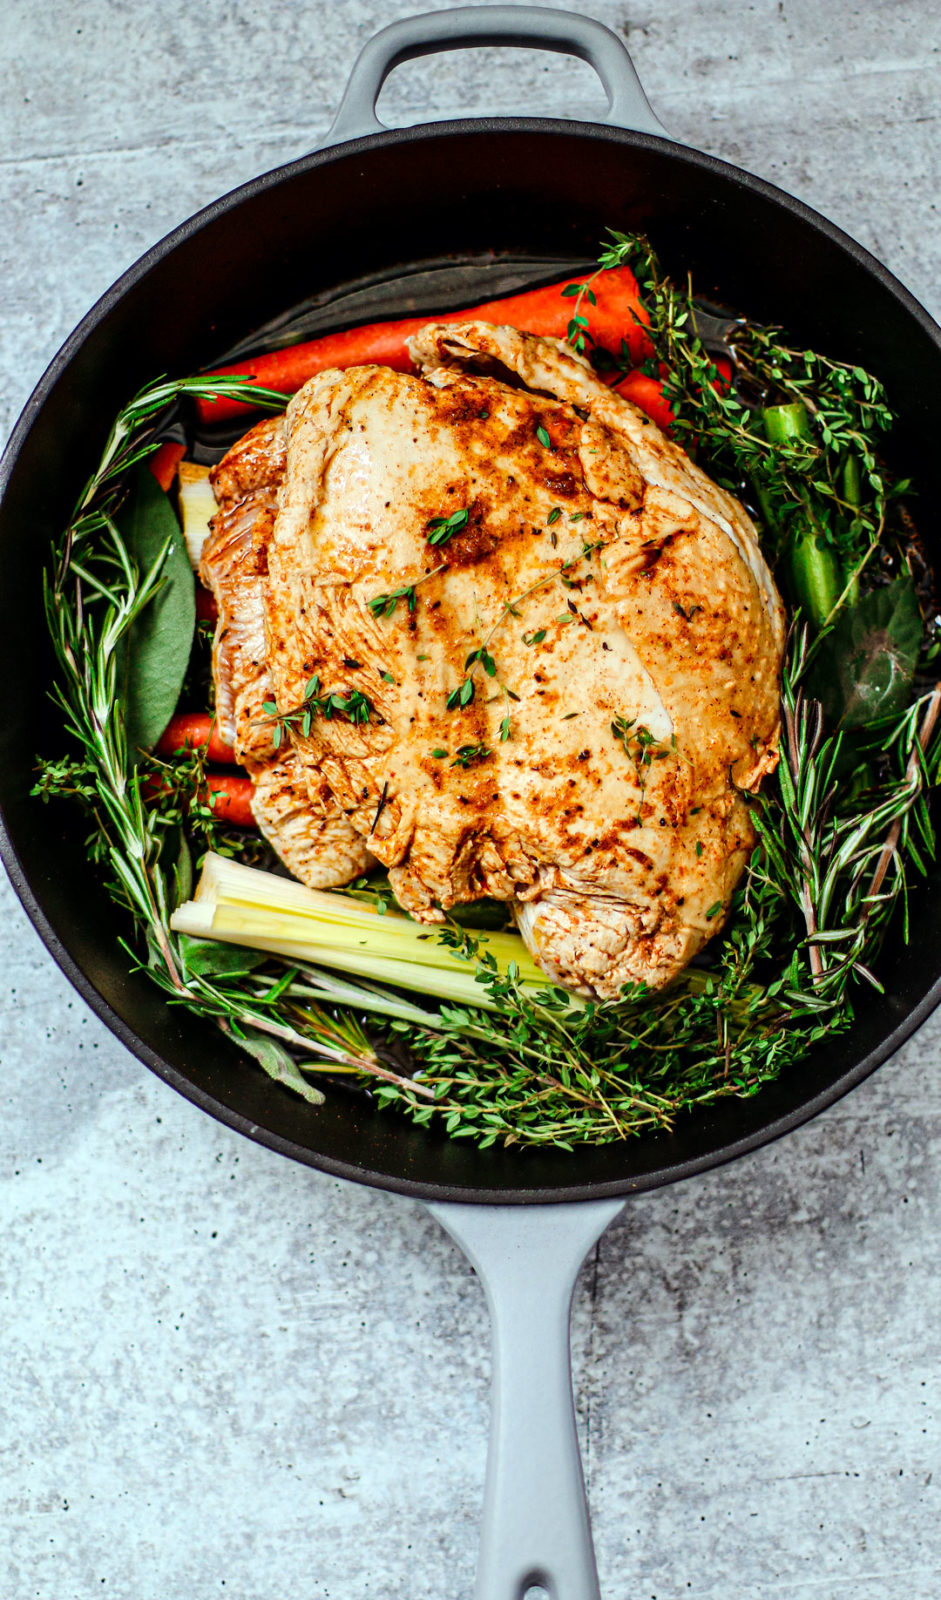 Turkey in pan with fresh herbs and veggies